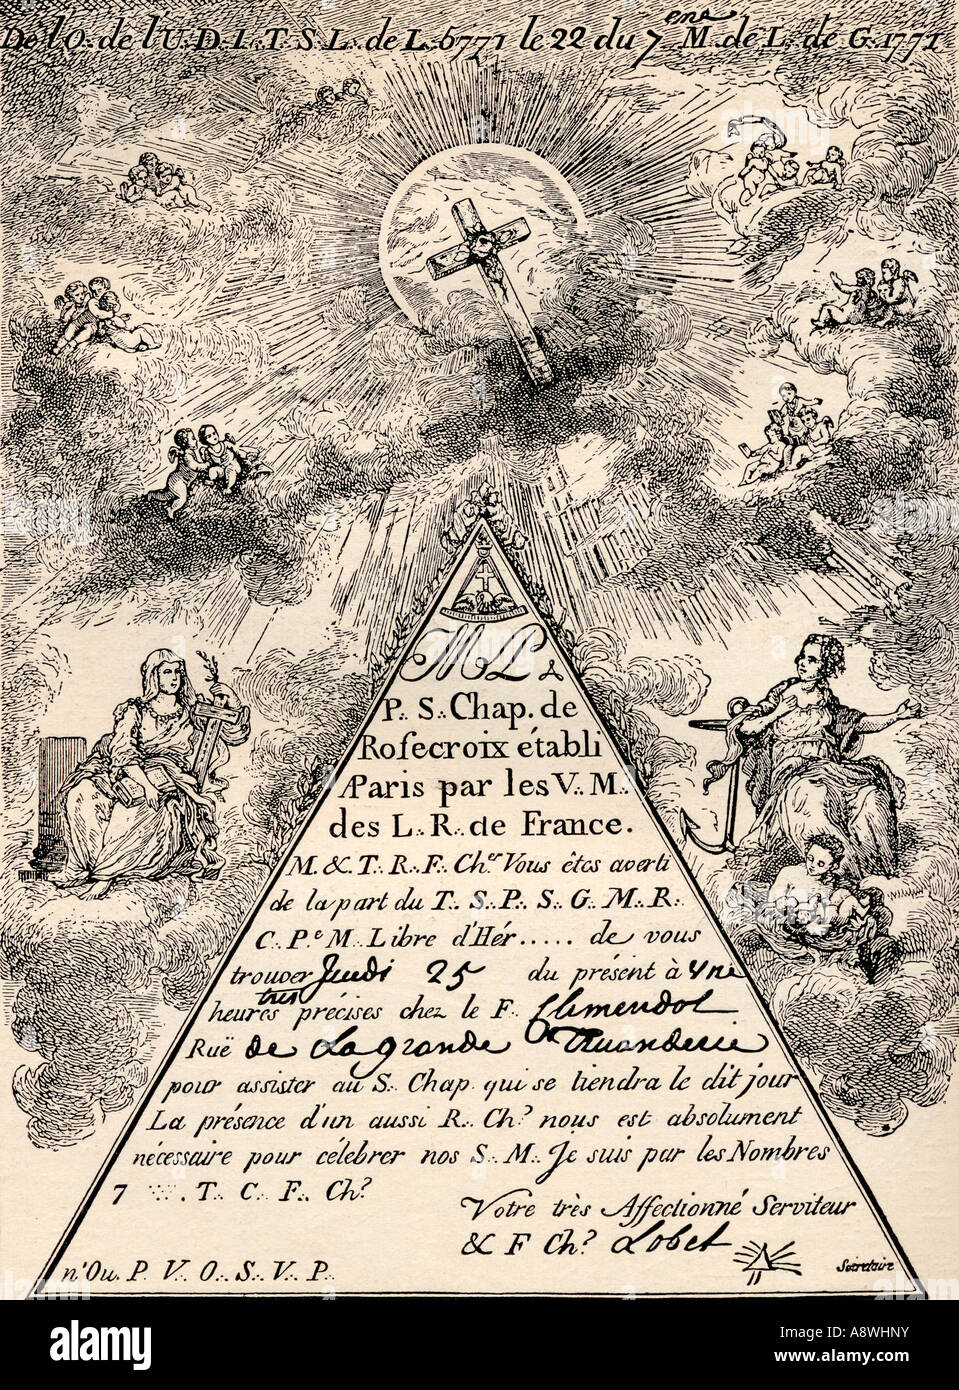 Invitation from the French Chapter of the Freemasons 1771 - Stock Image